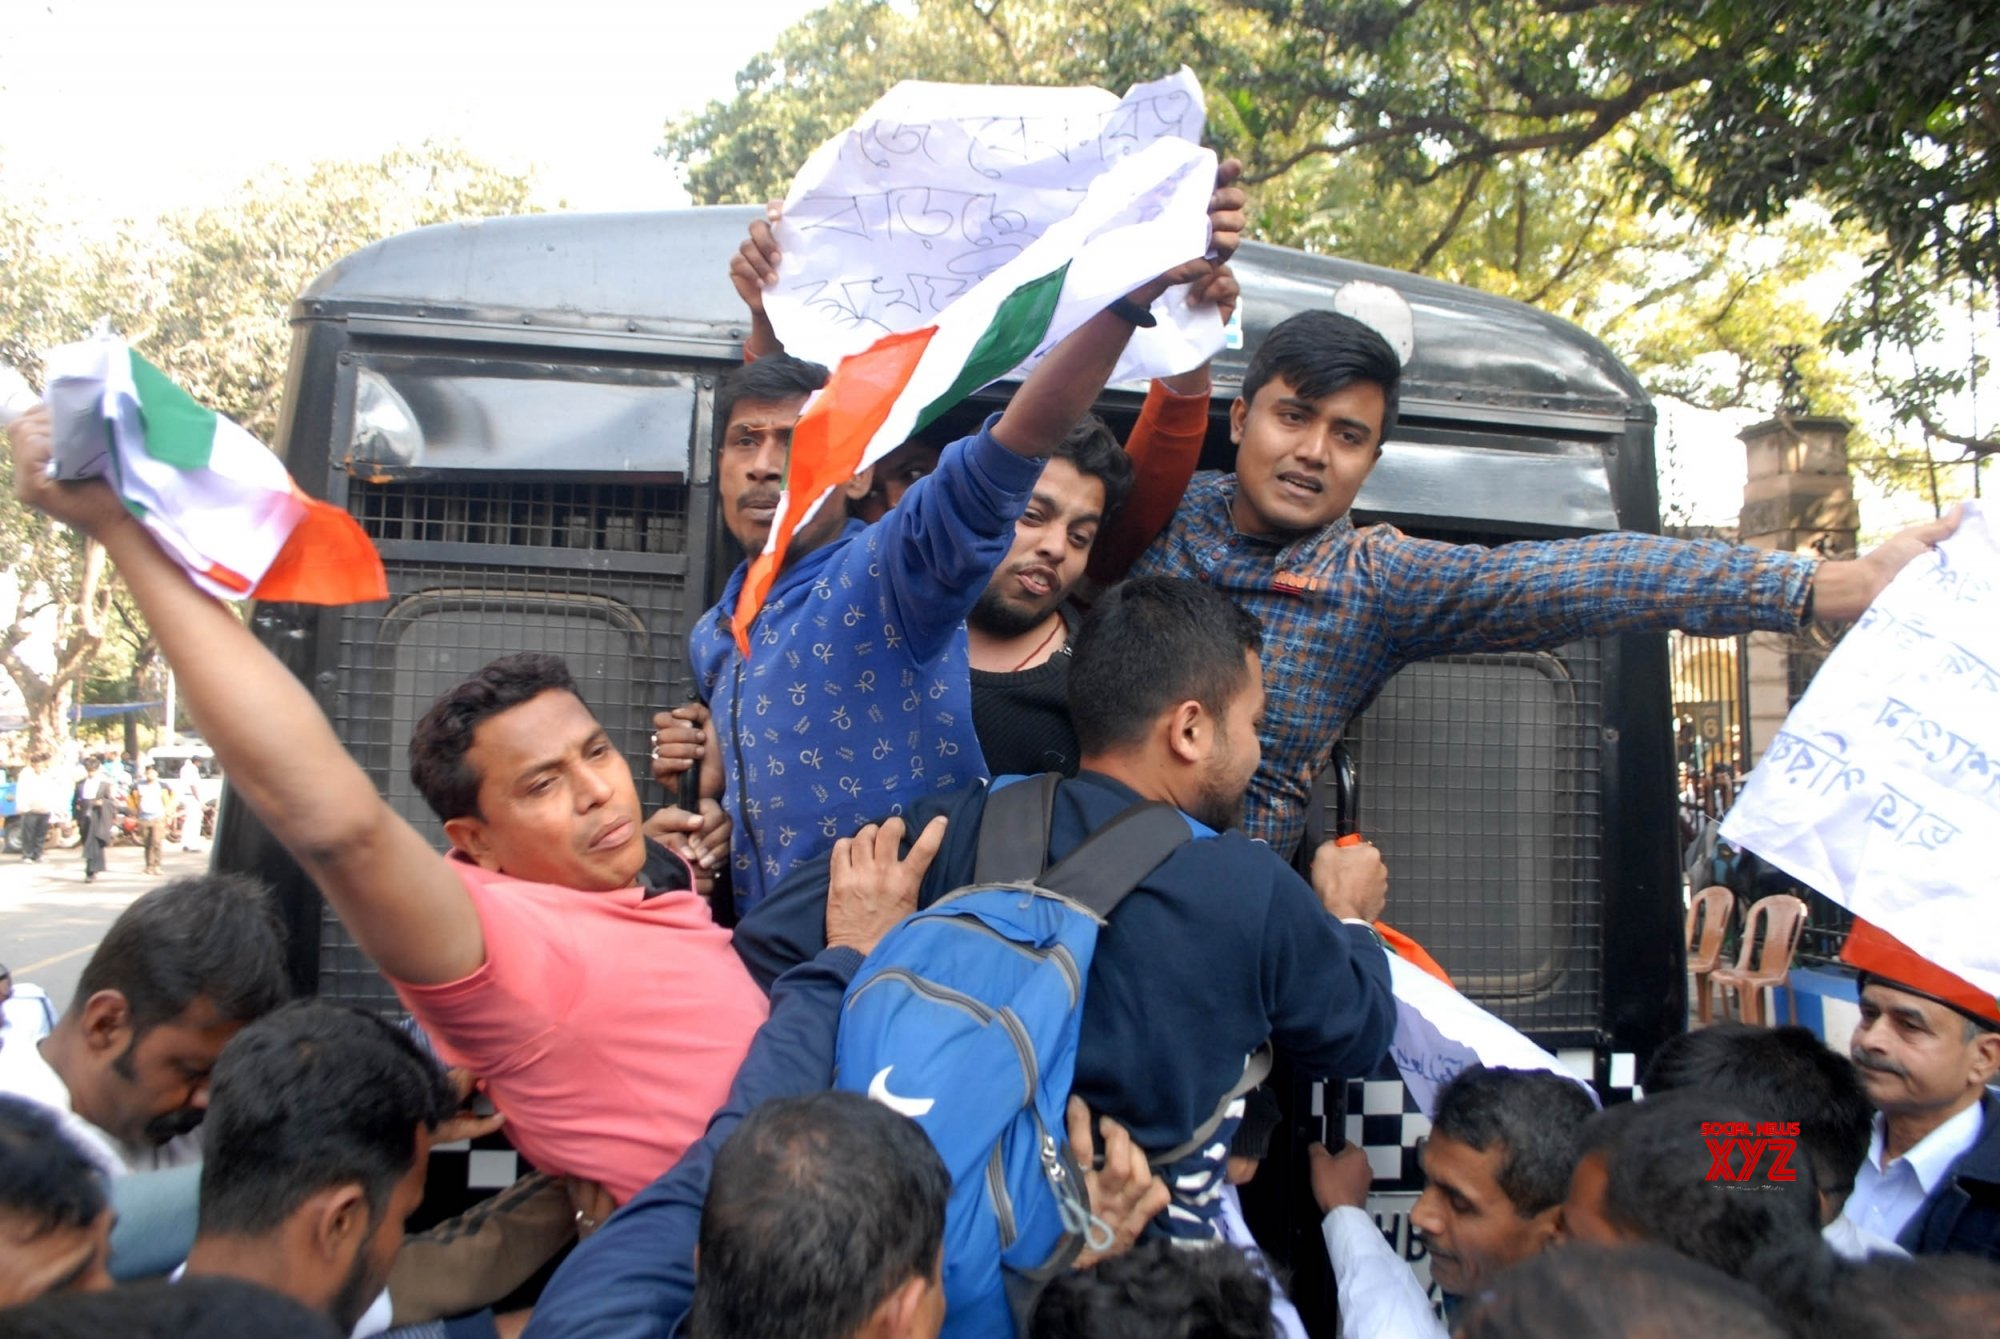 Kolkata: Congress activists protesting outside West Bengal Assembly detained #Gallery